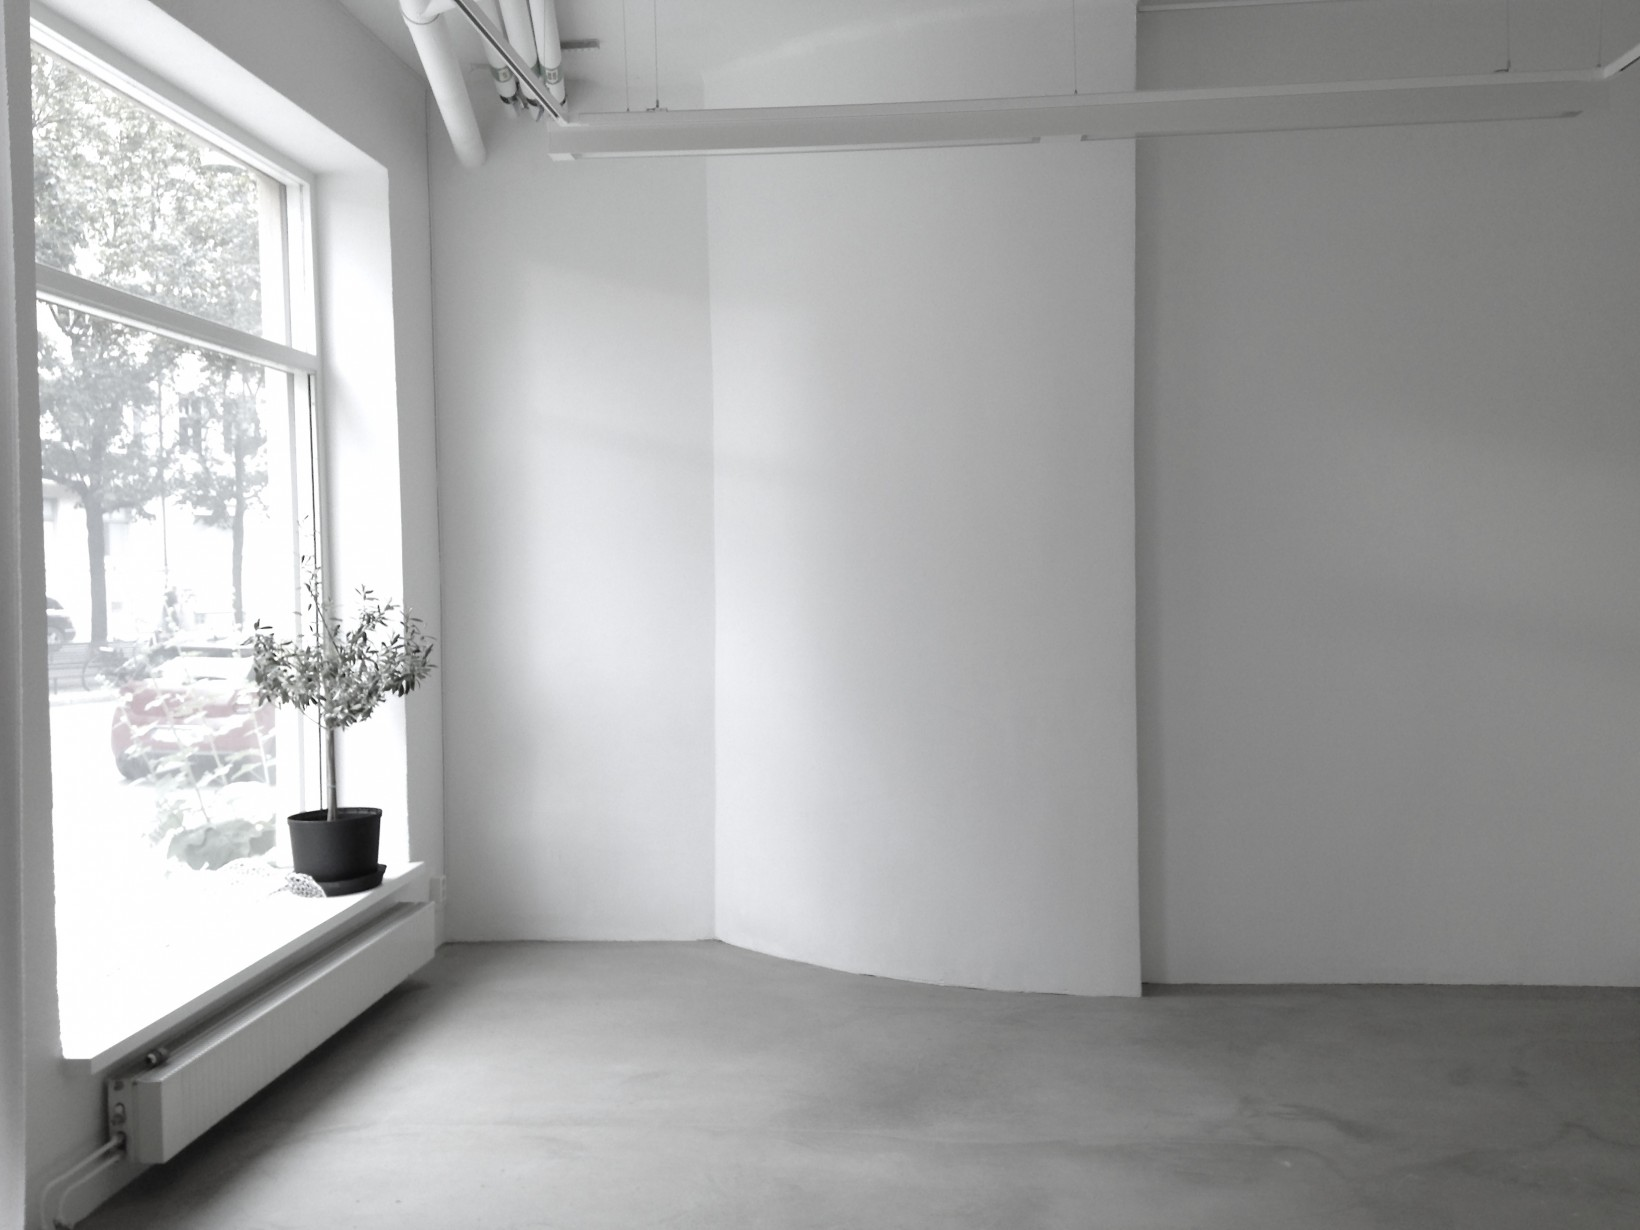 Fiberspace Gallery - The first Easy Piece Collaboratory will take place at the Fiberspace Gallery in Stockholm Dec 5-8, 2019.